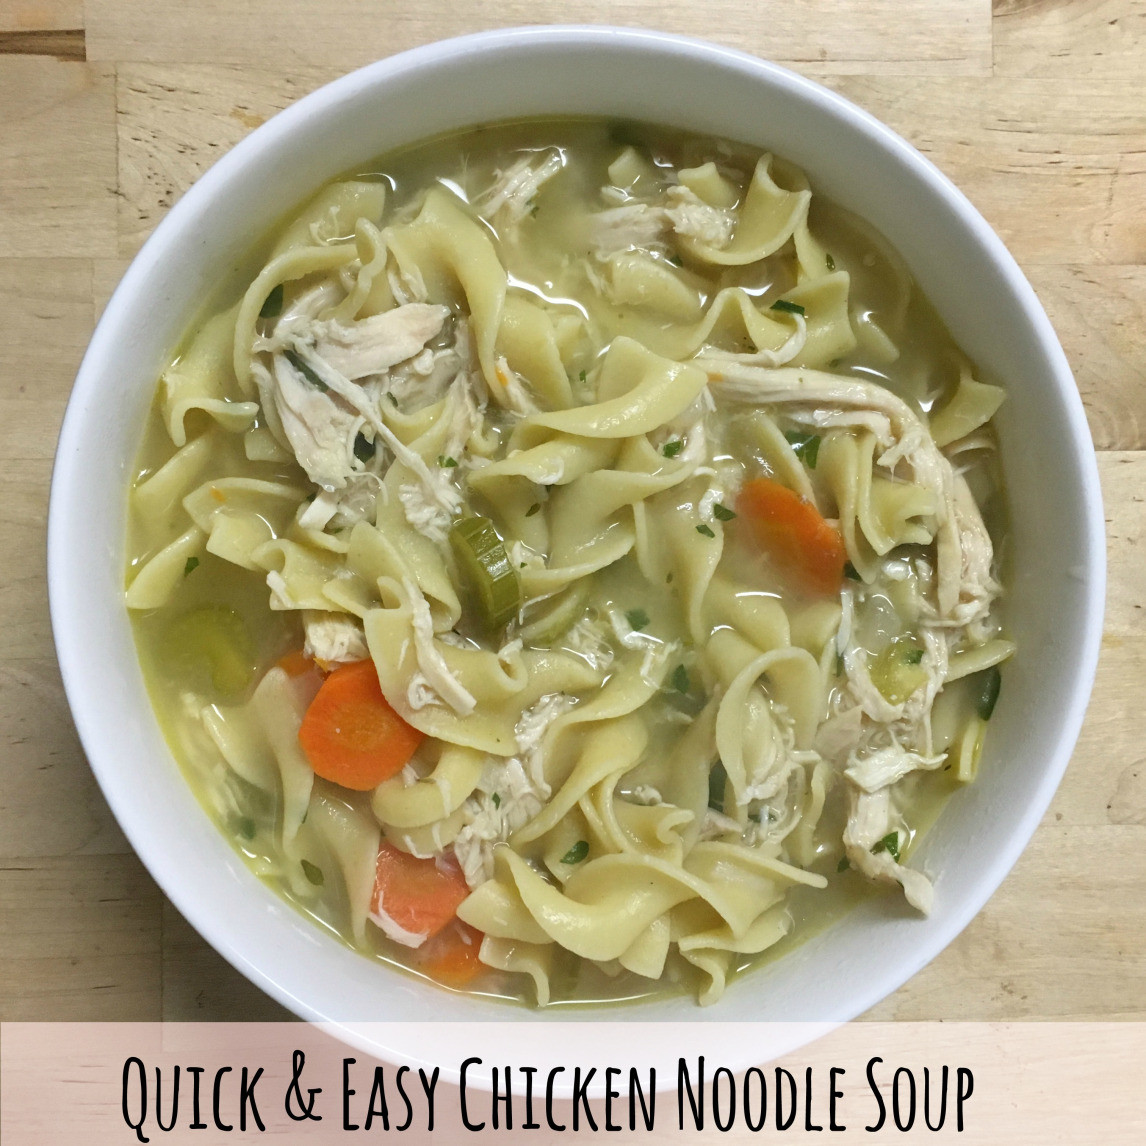 Easy Chicken Noodle Soup  Quick and Easy Chicken Noodle Soup